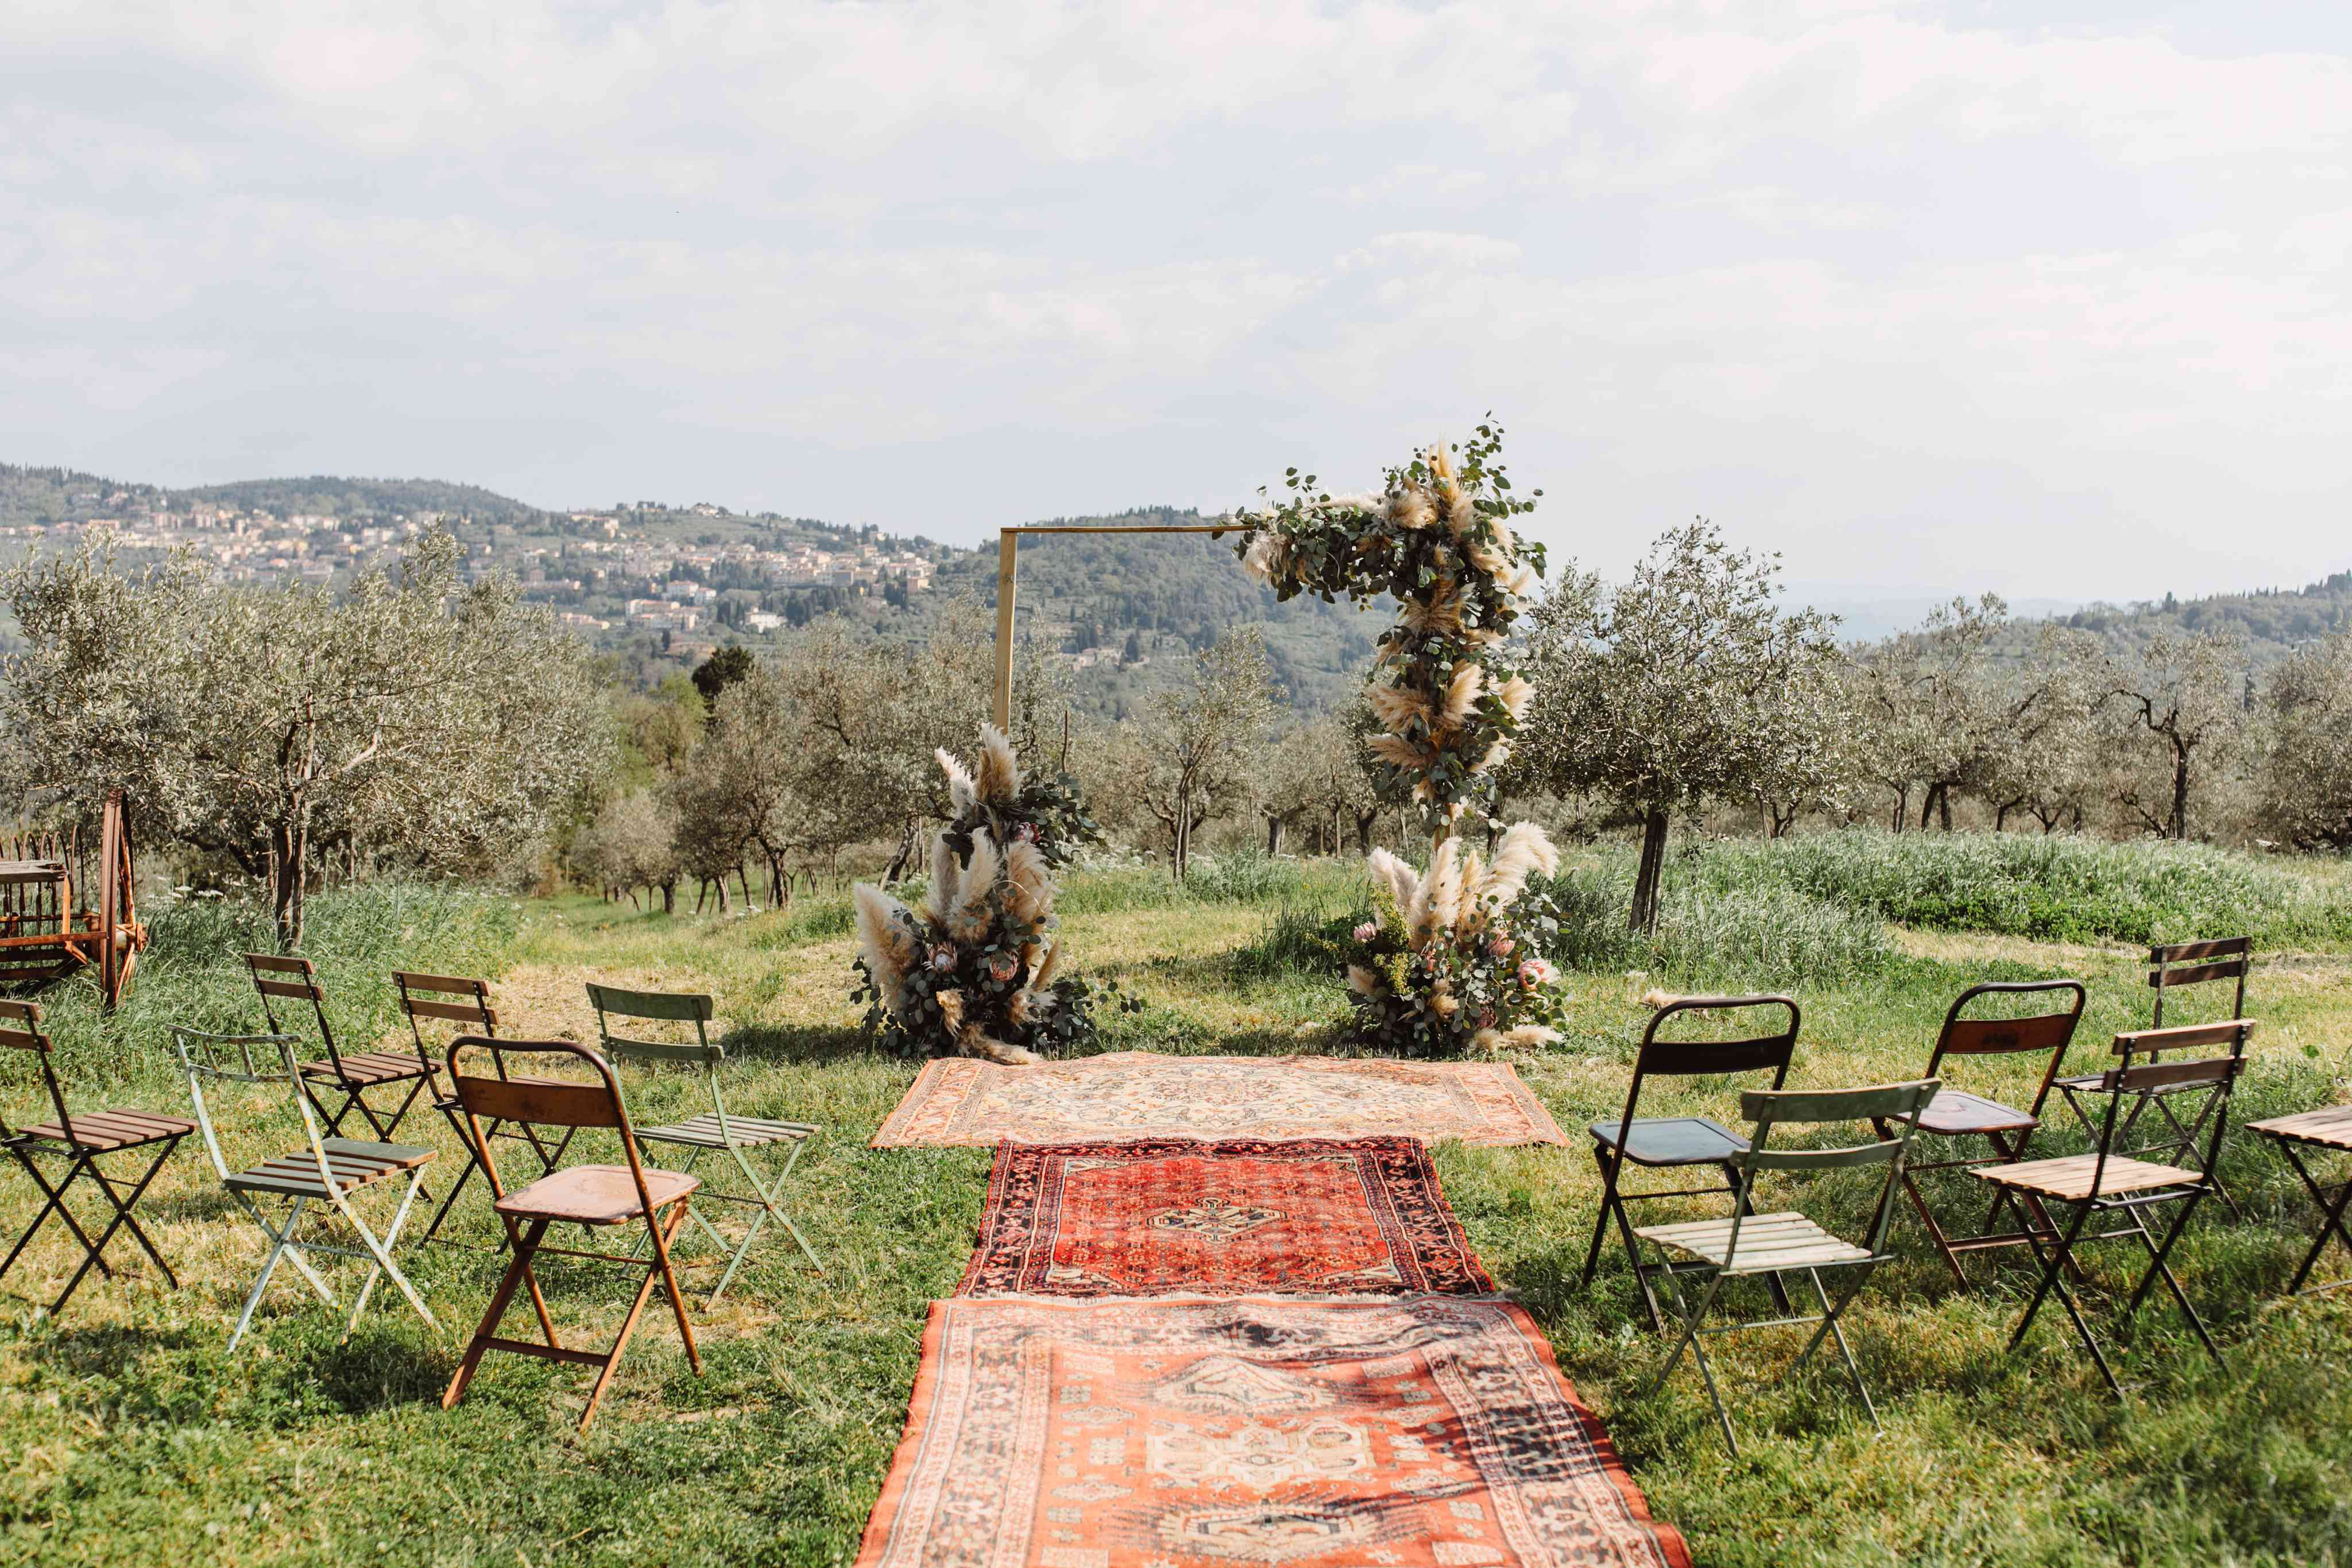 small ceremony rugs in aisle and altar structure